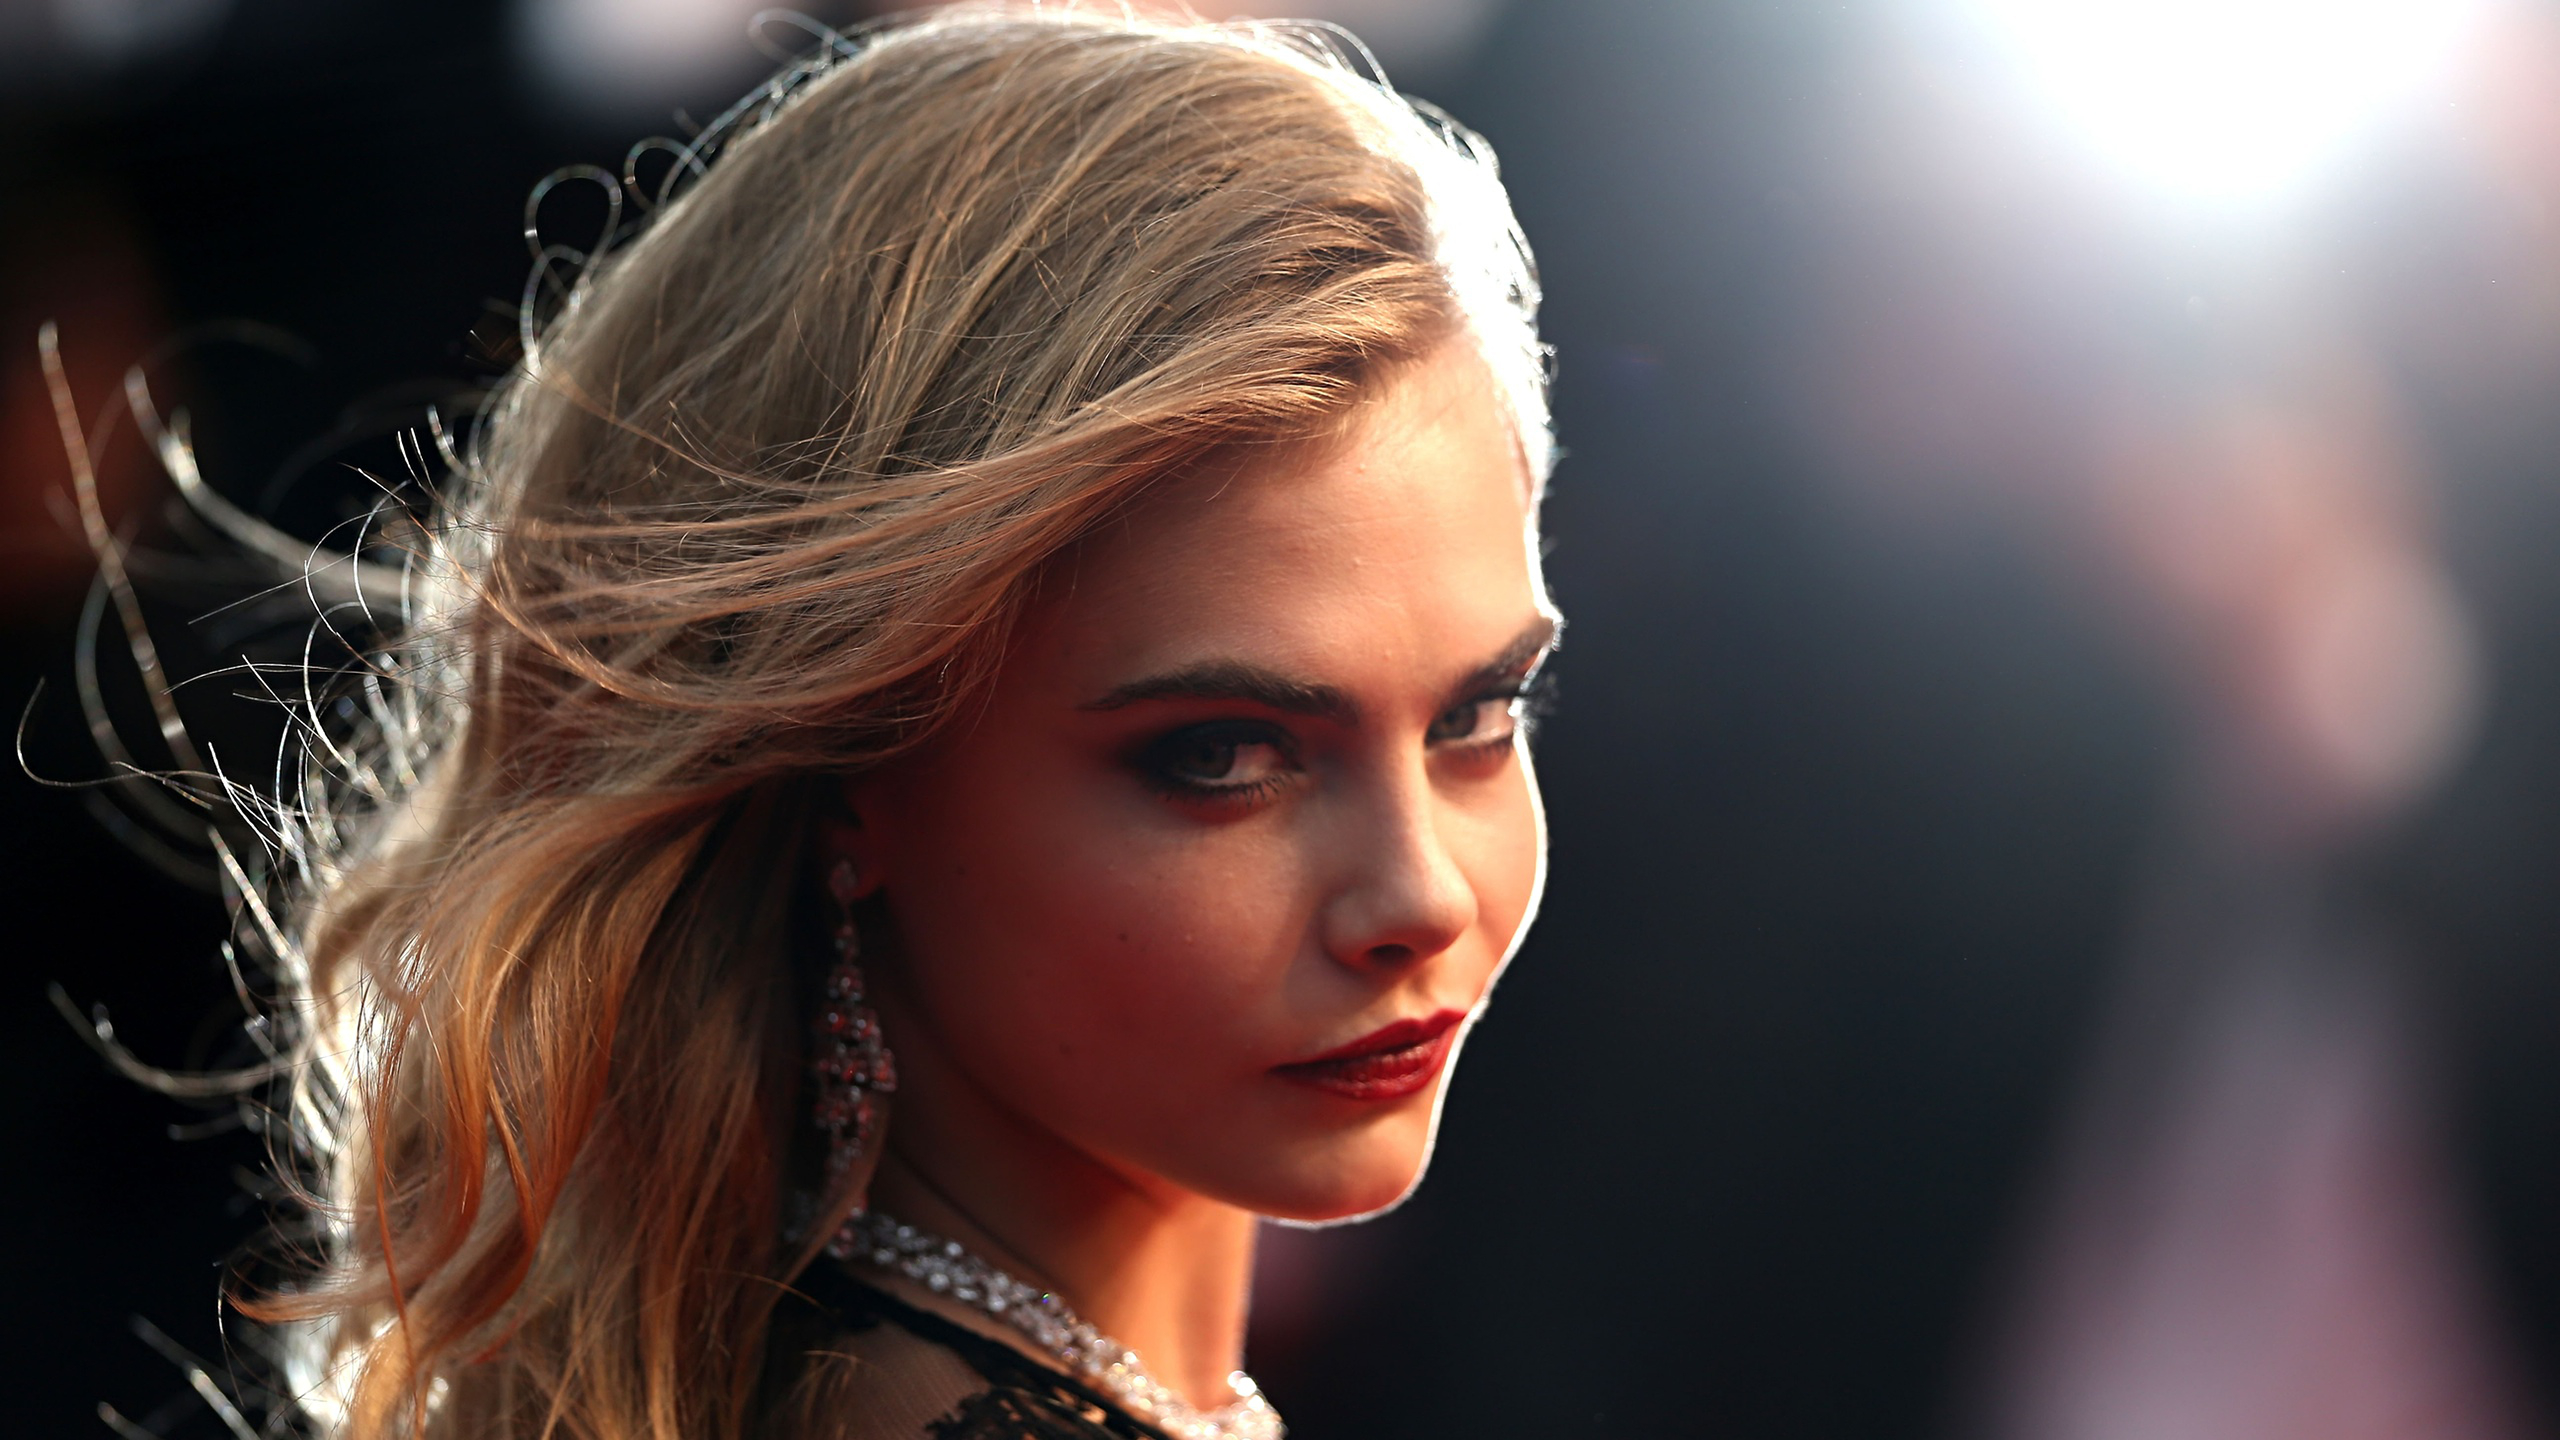 Cara Delevingne Celebrity Pictures Hd Wallpaper 64683 2560x1440px